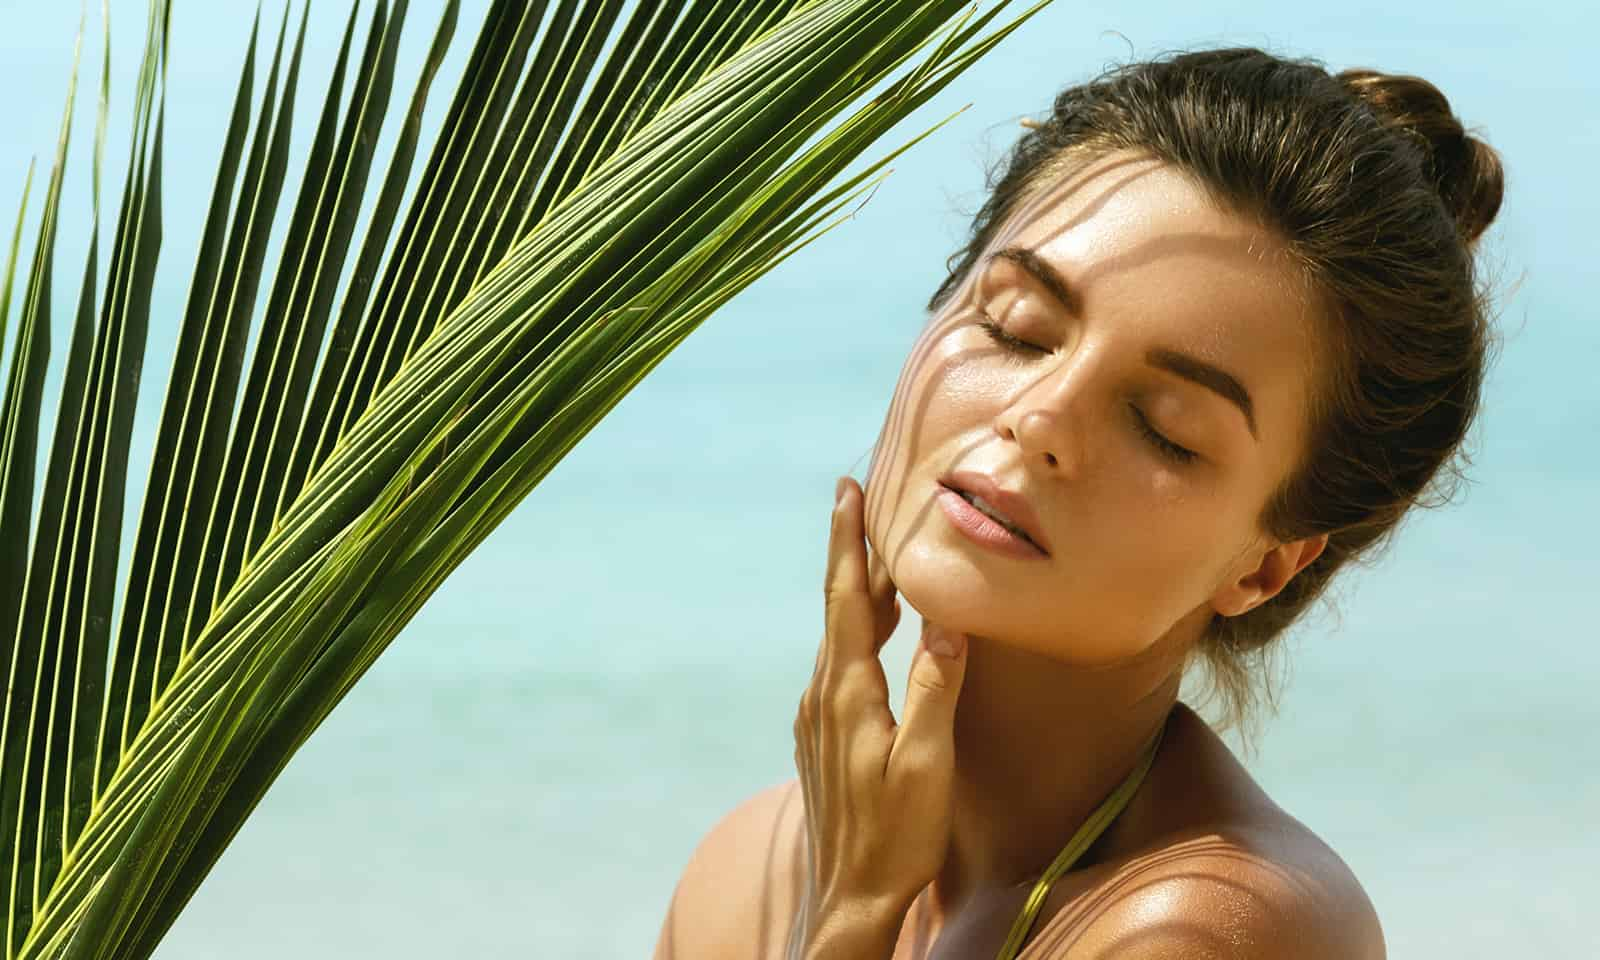 Toxic-Skincare-OUT-How-to-Transition-to-Non-Toxic-Skincare-main-image